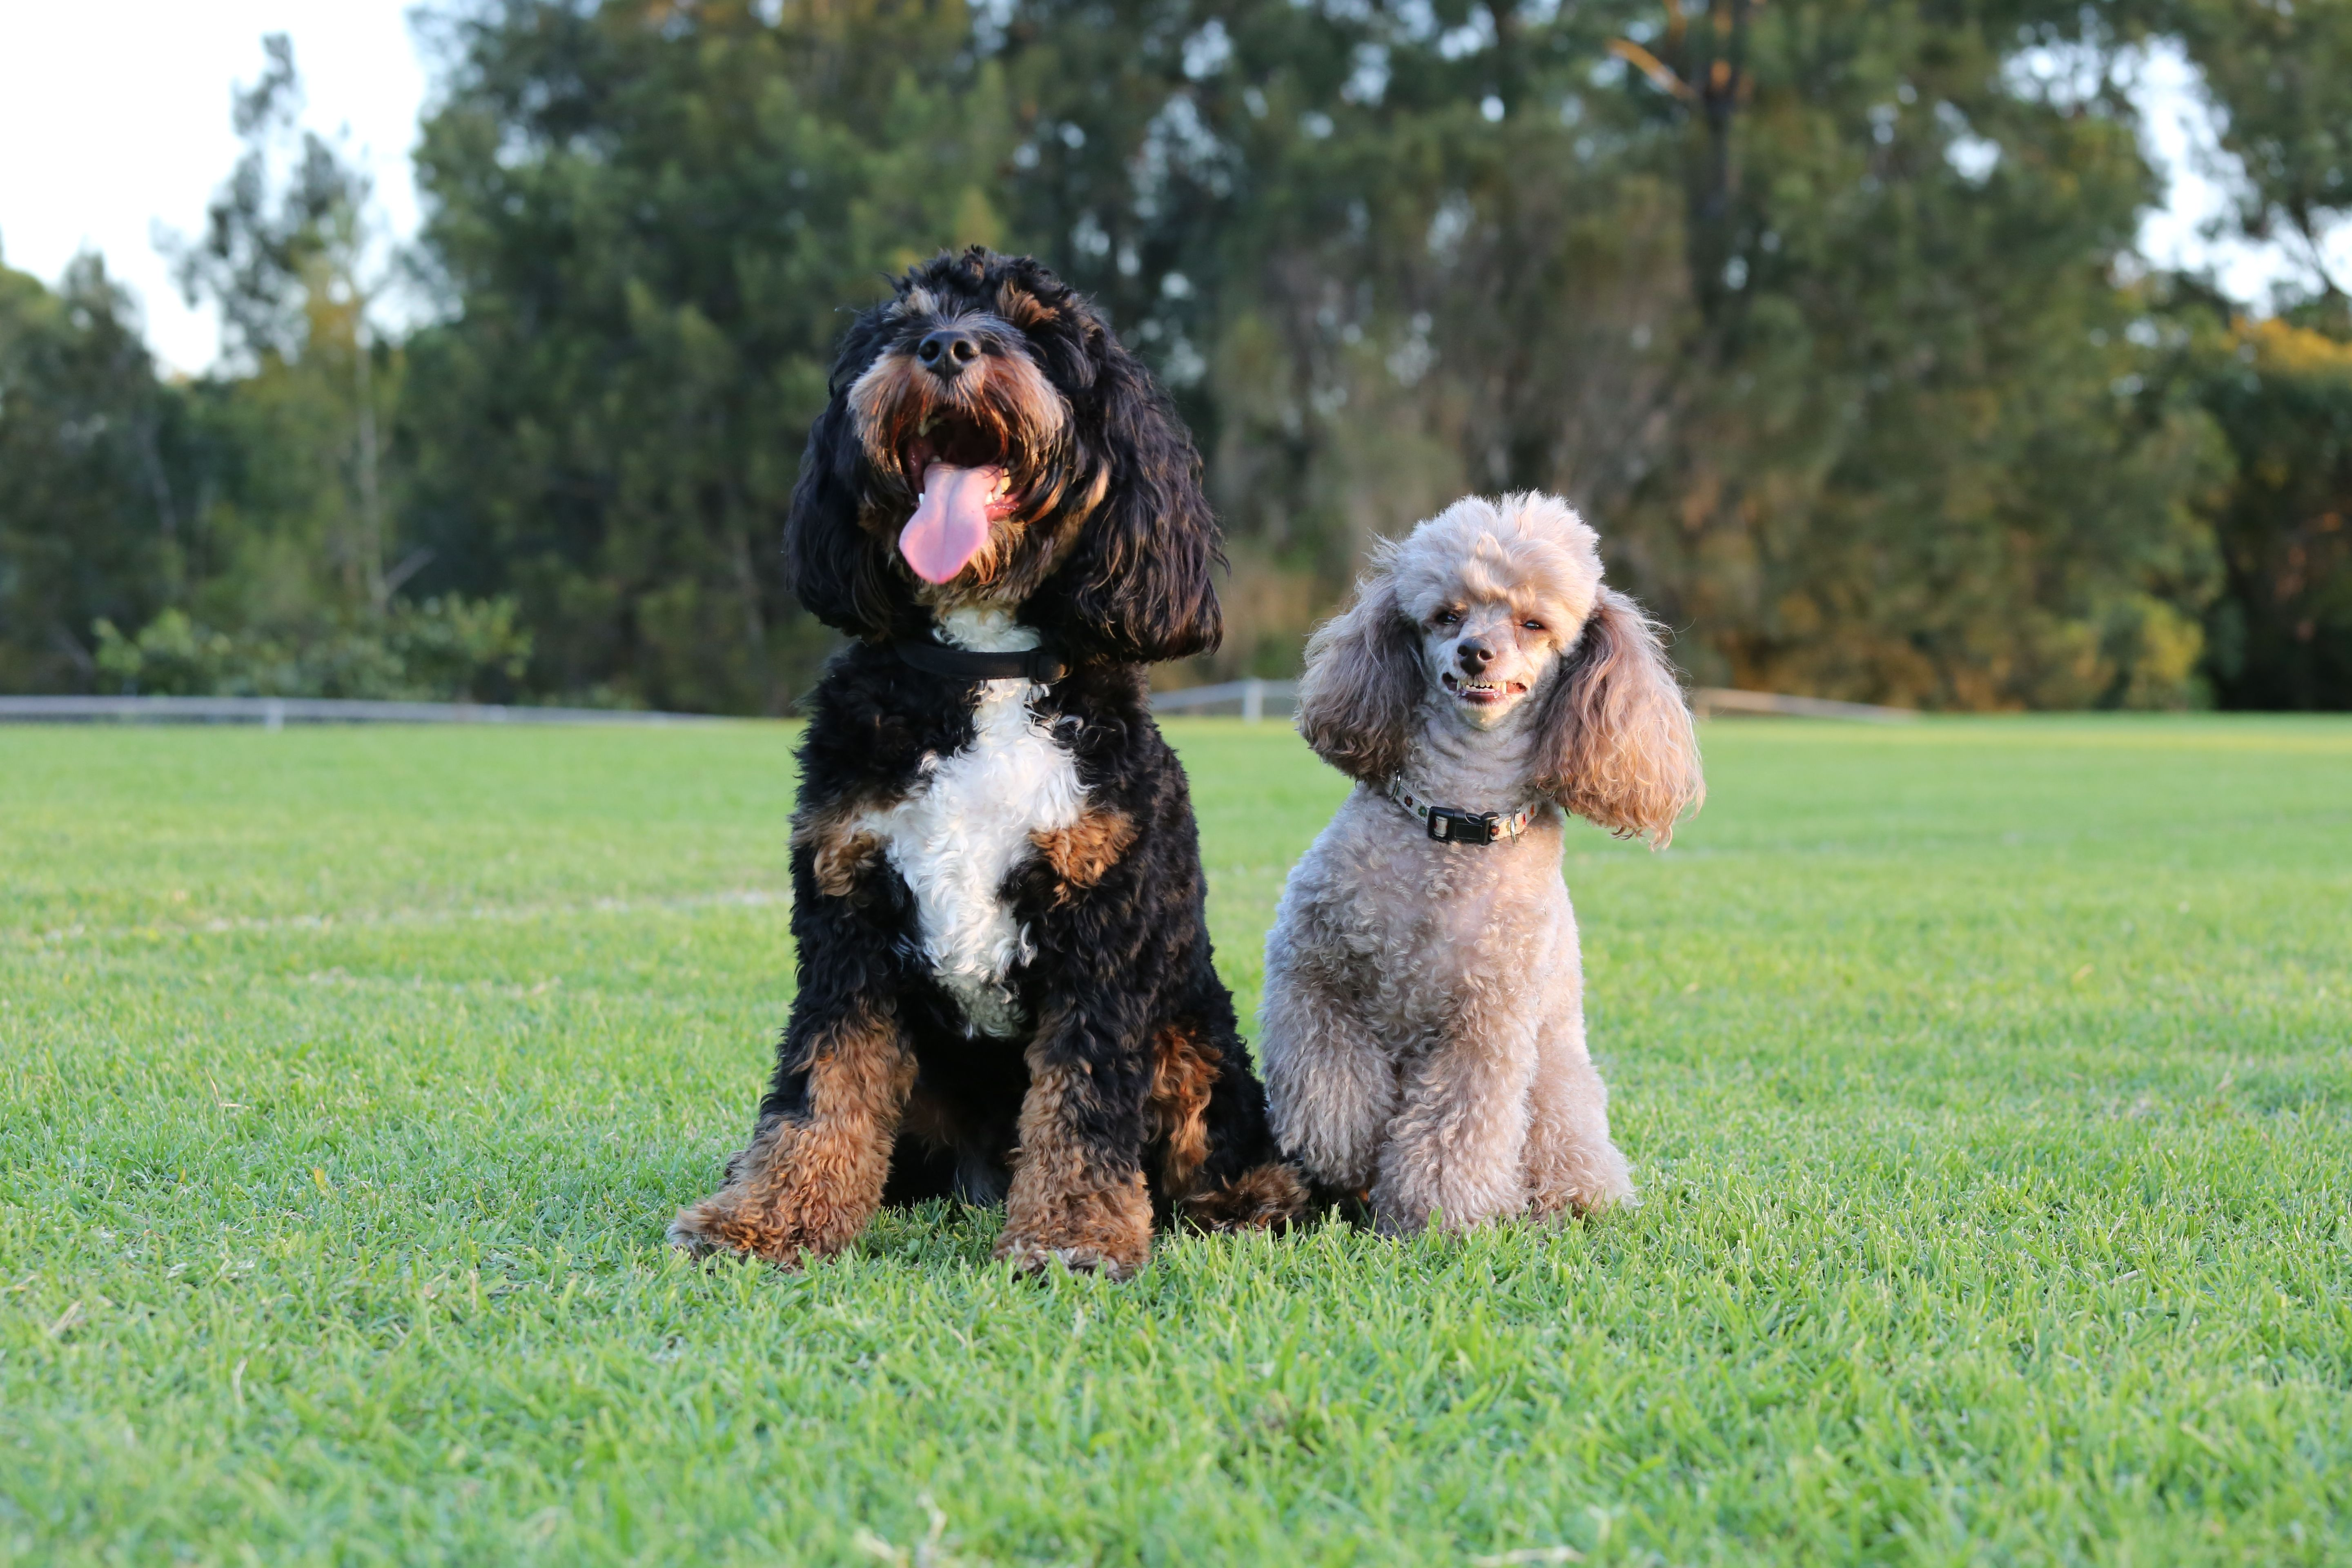 A Smiling Poodle with her Cavoodle Brother